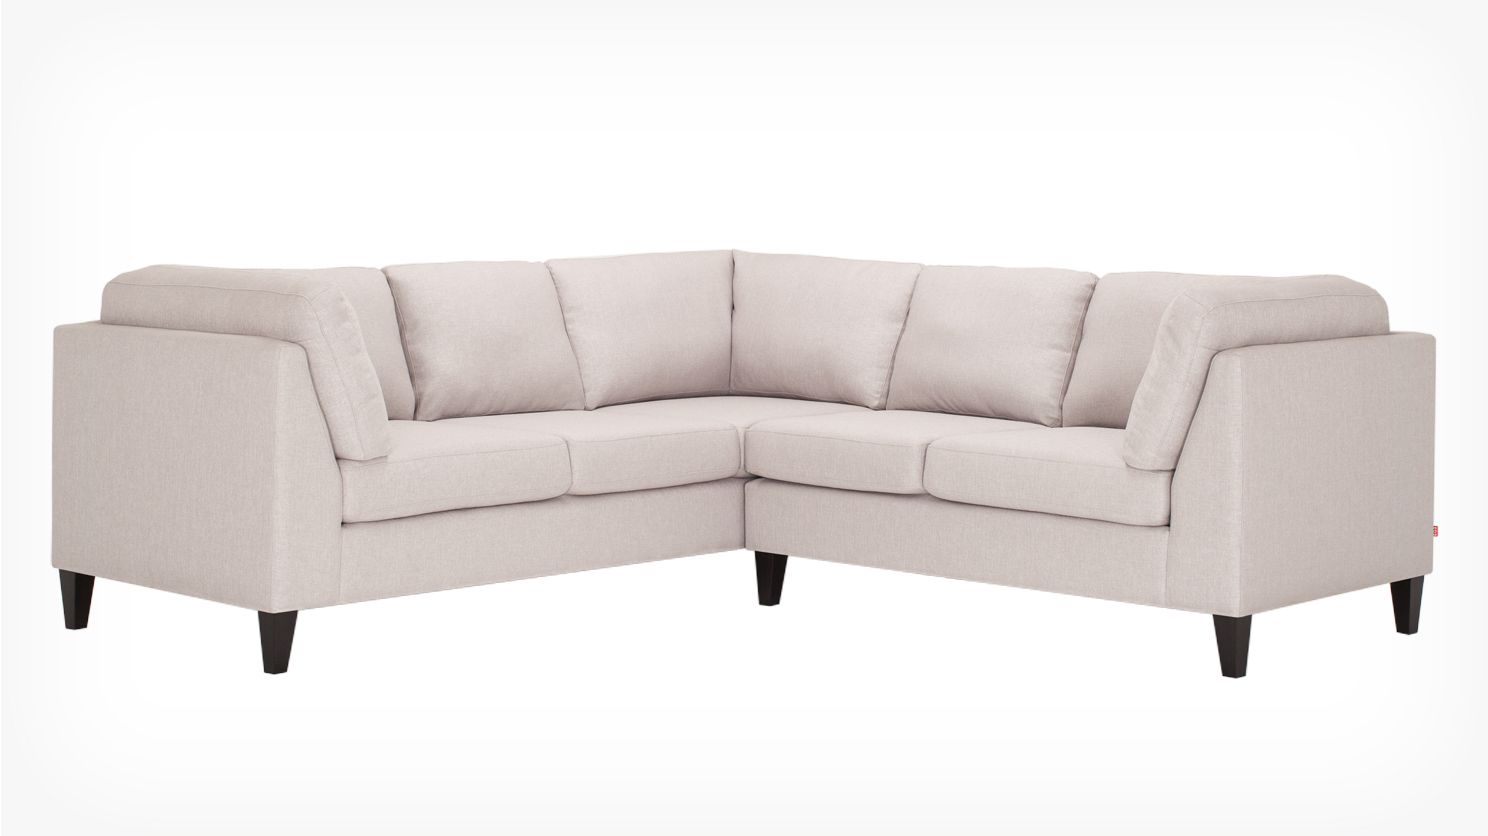 Salema 2 Piece Sectional Sofa Polo Grey Front 02 Decoration  # Polo Muebles Hudson